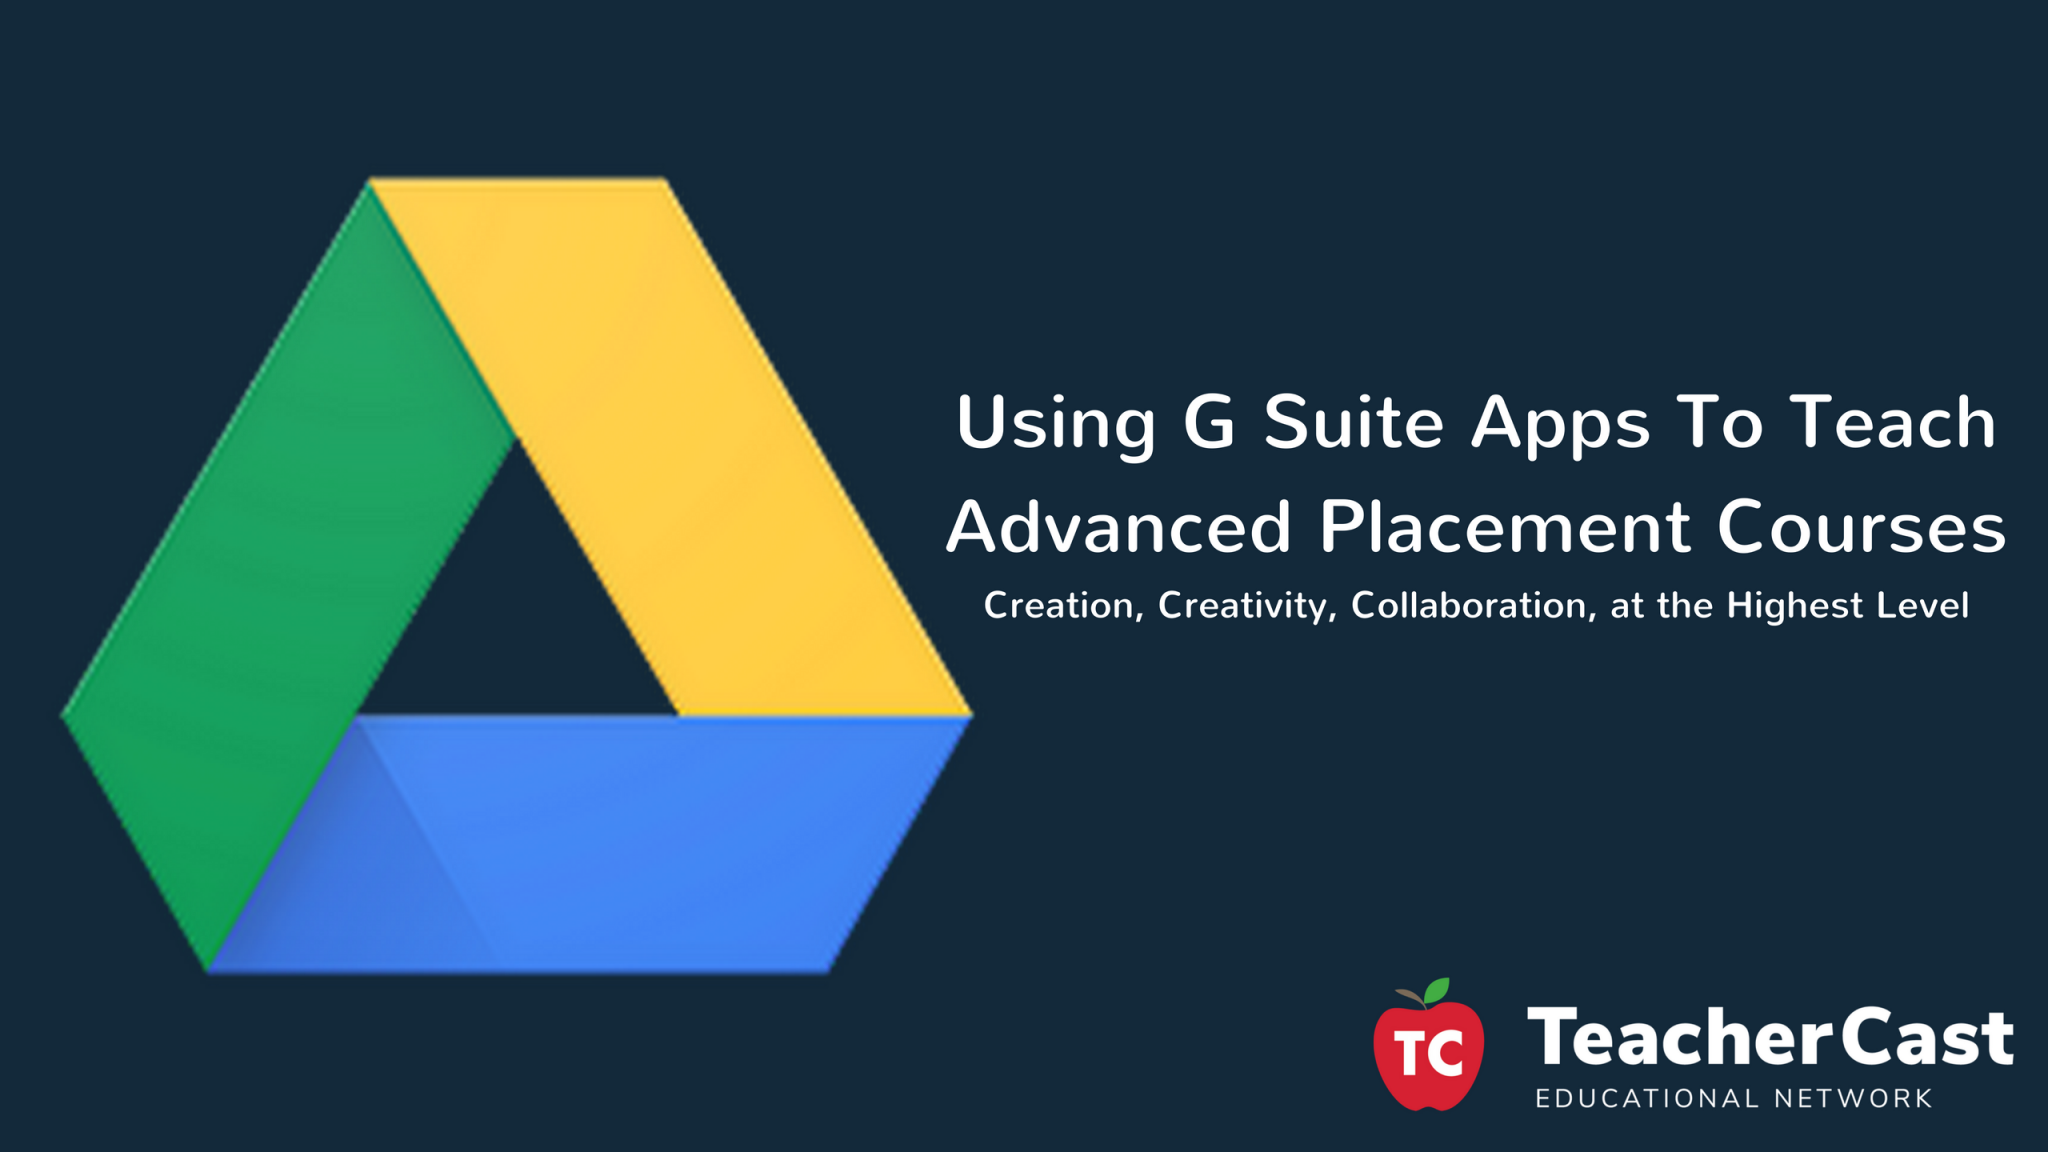 Teaching G Suite in AP Courses Workshop